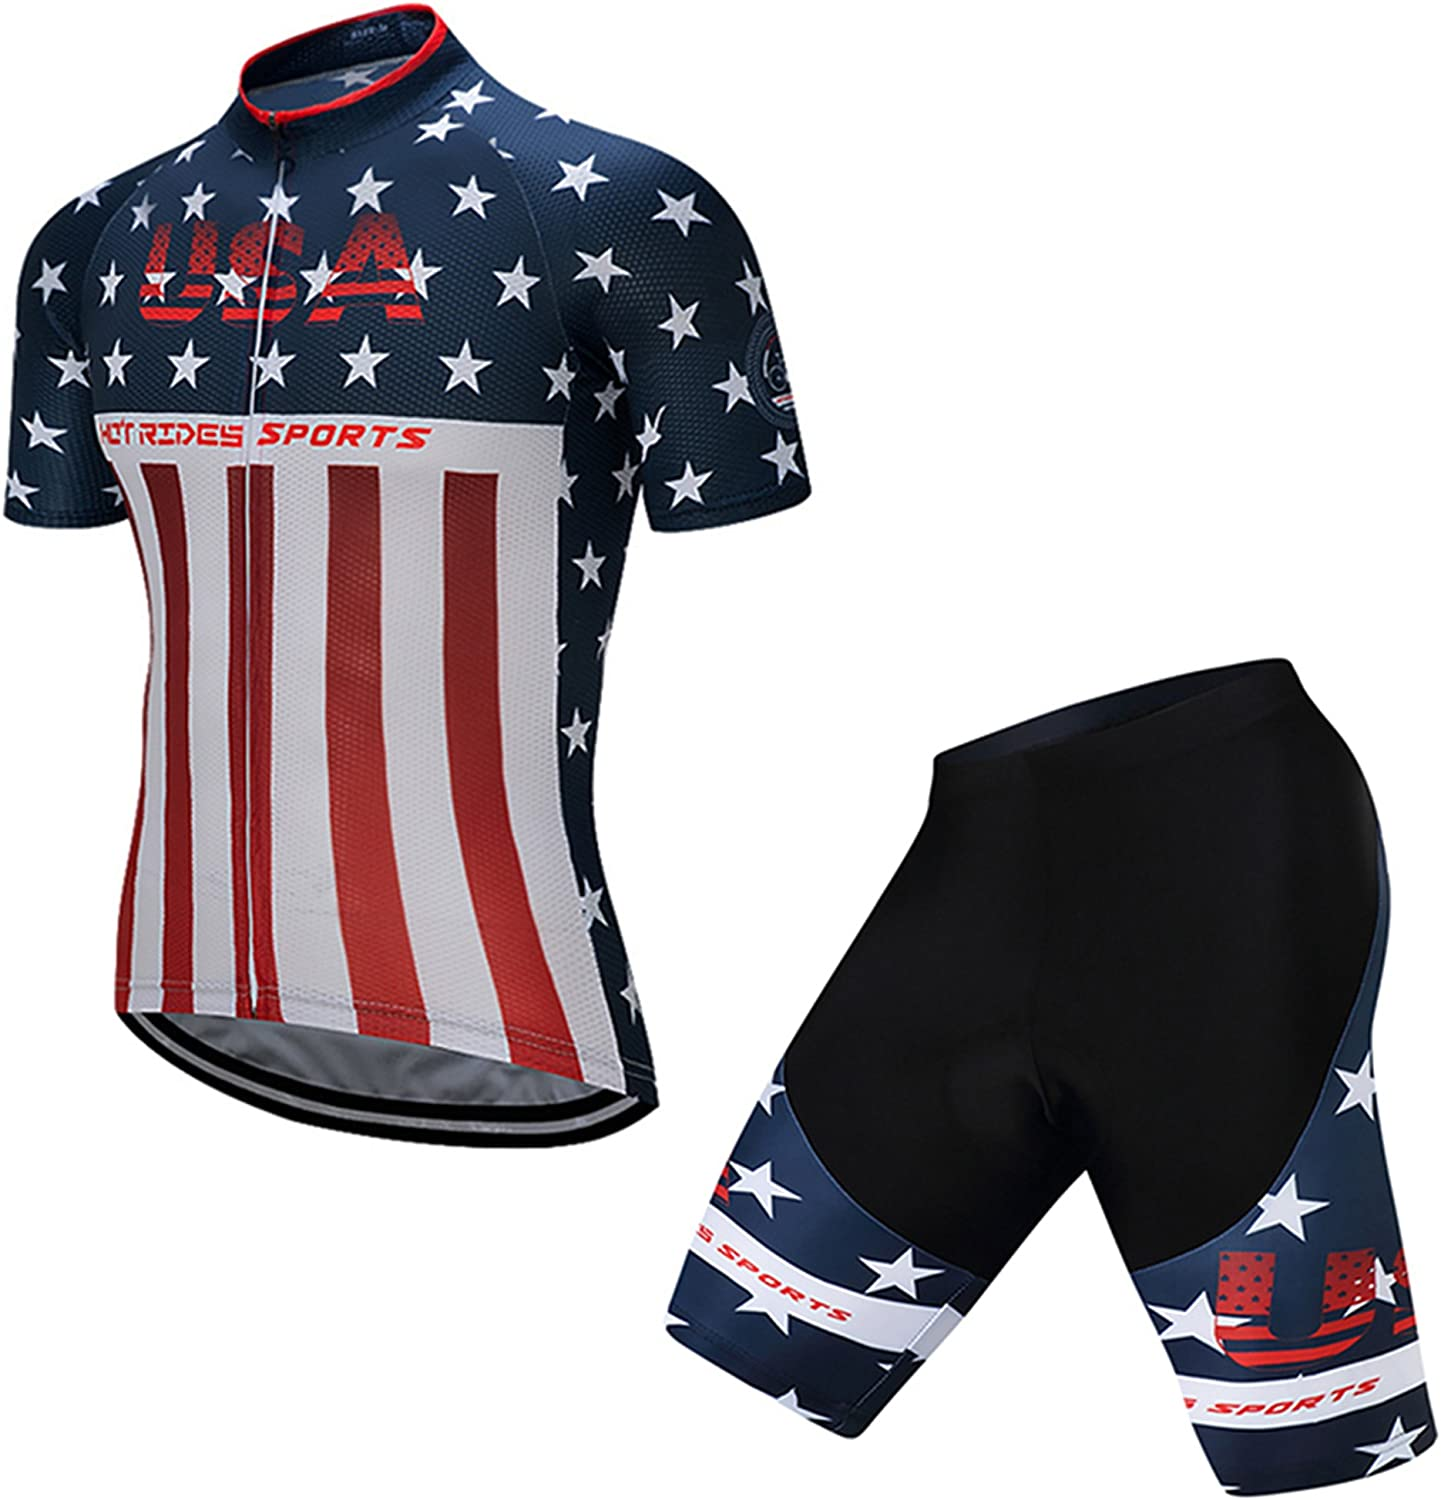 Hot Rides Men's Regular discount Clearance SALE! Limited time! Quick Dry Cycling Jersey Short Gel 3D Padded and